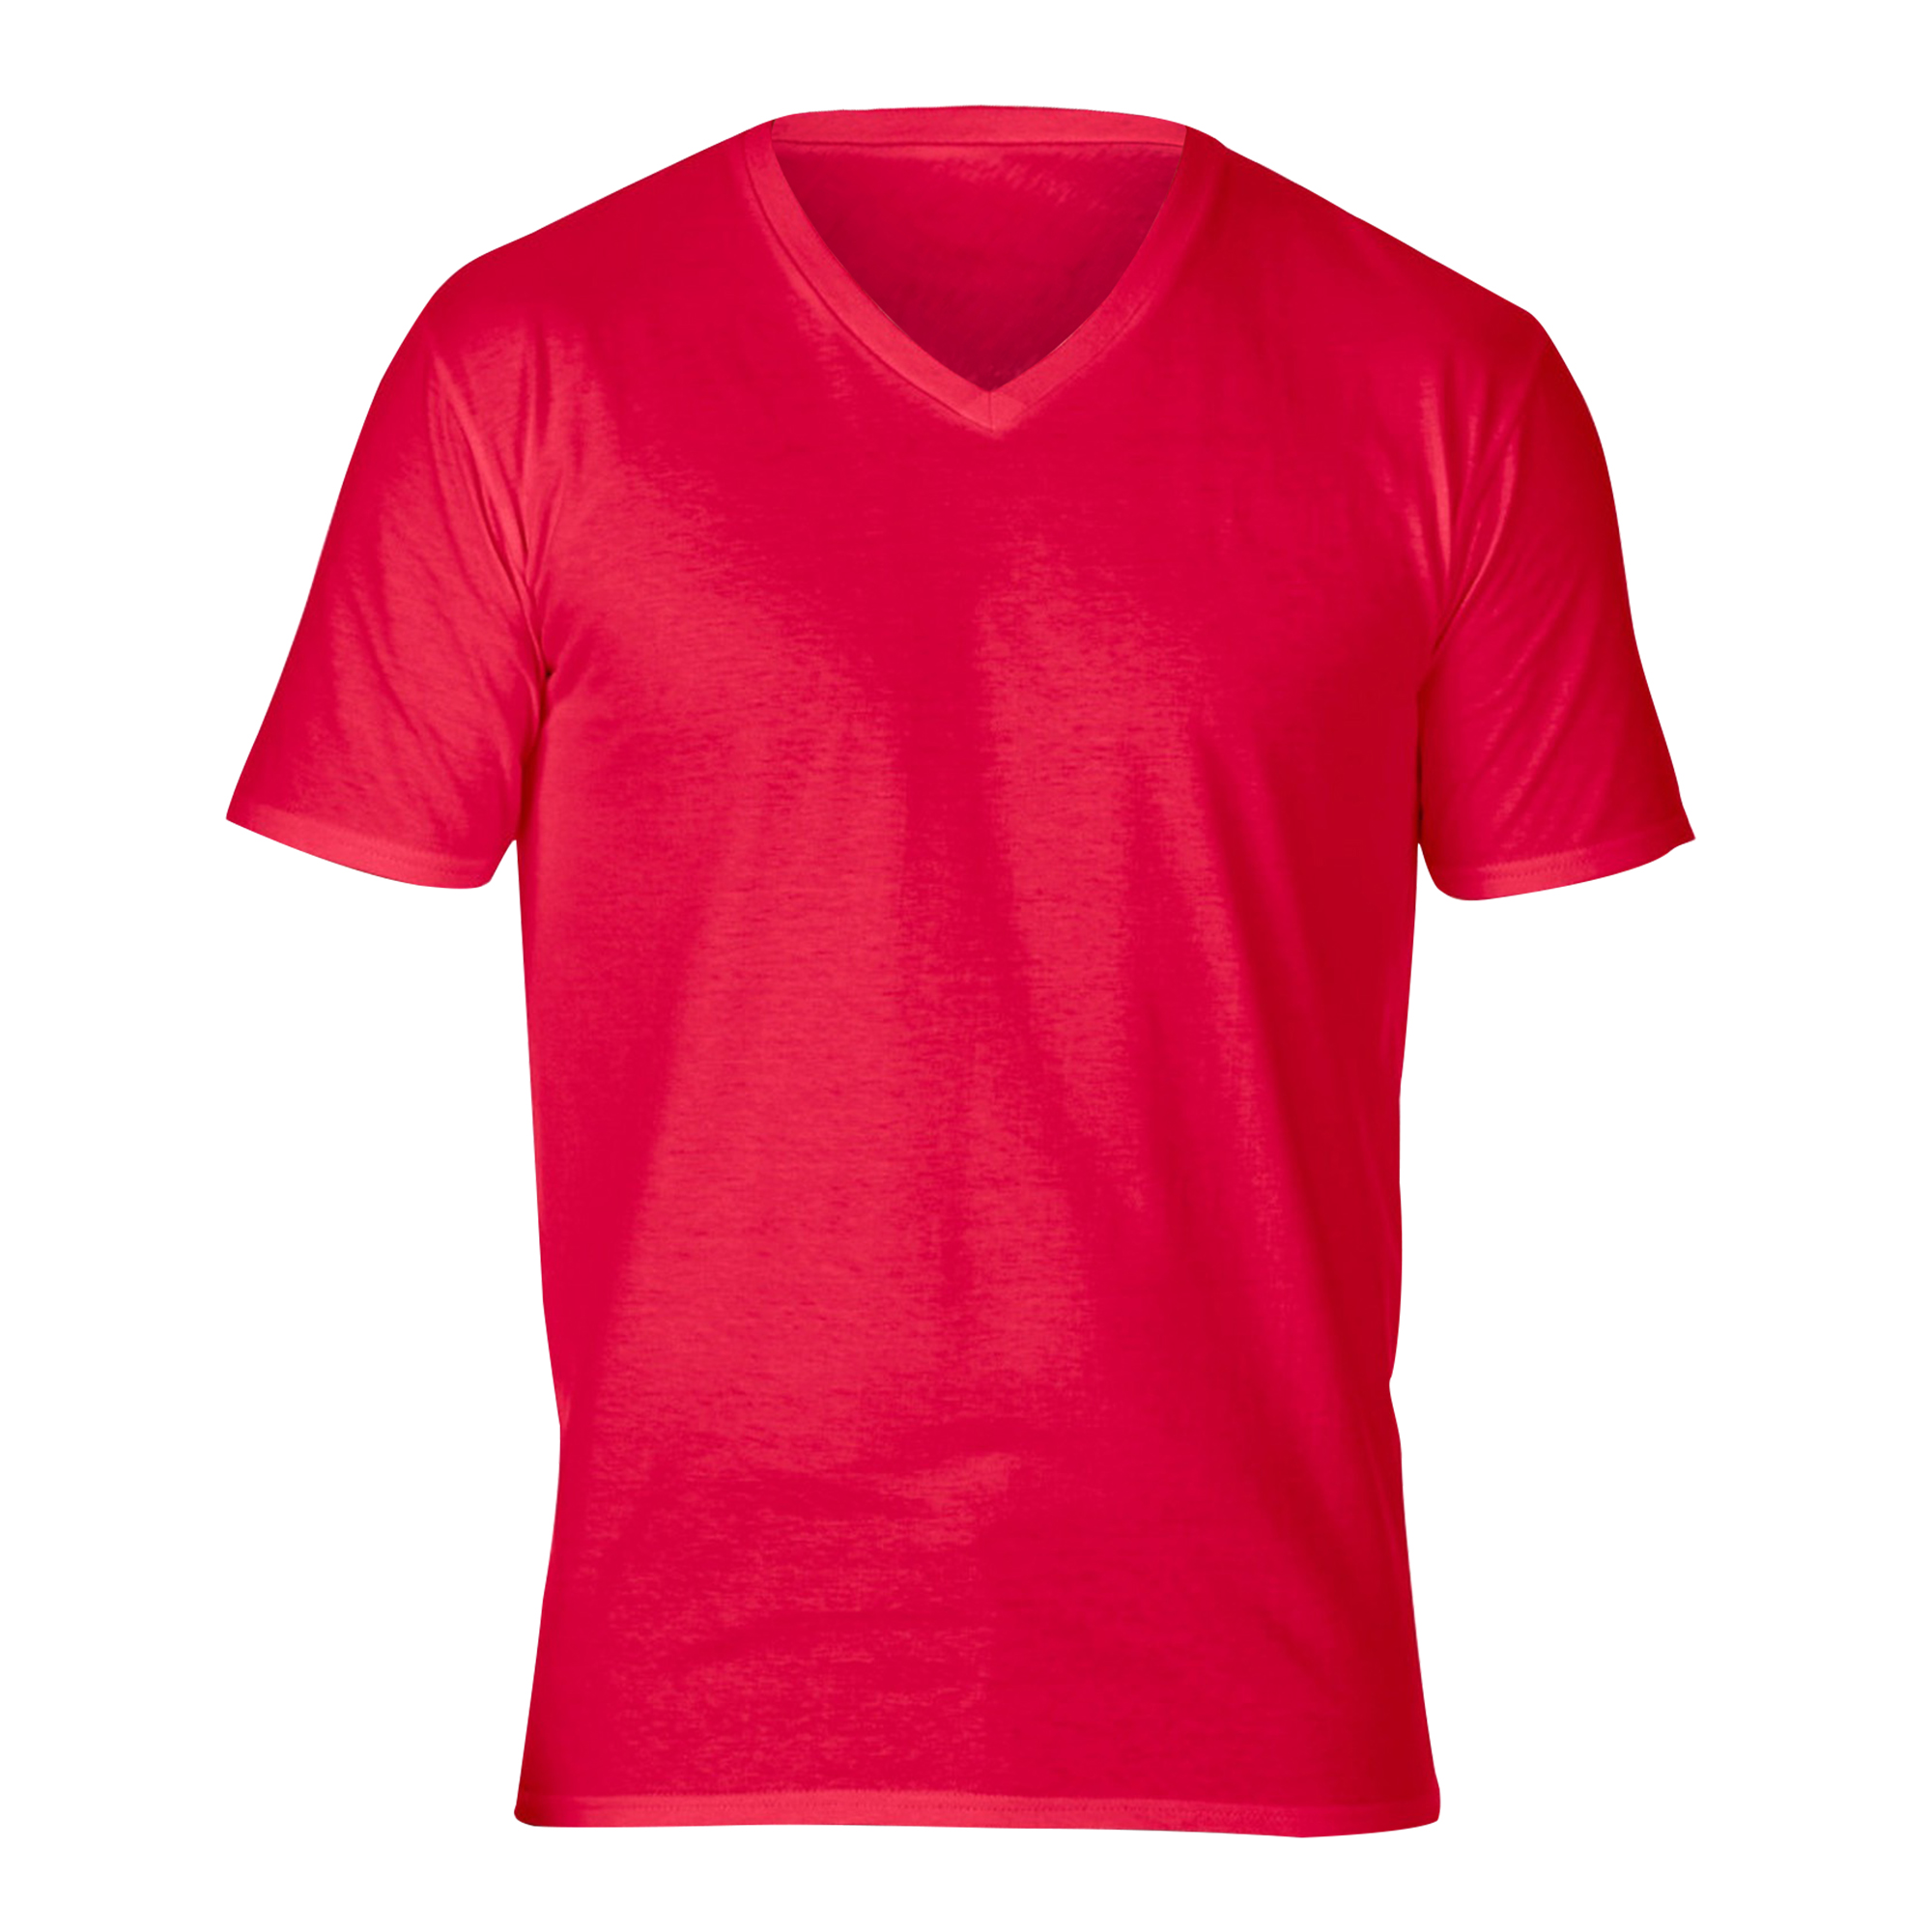 Adults Unisex V Neck T-shirts